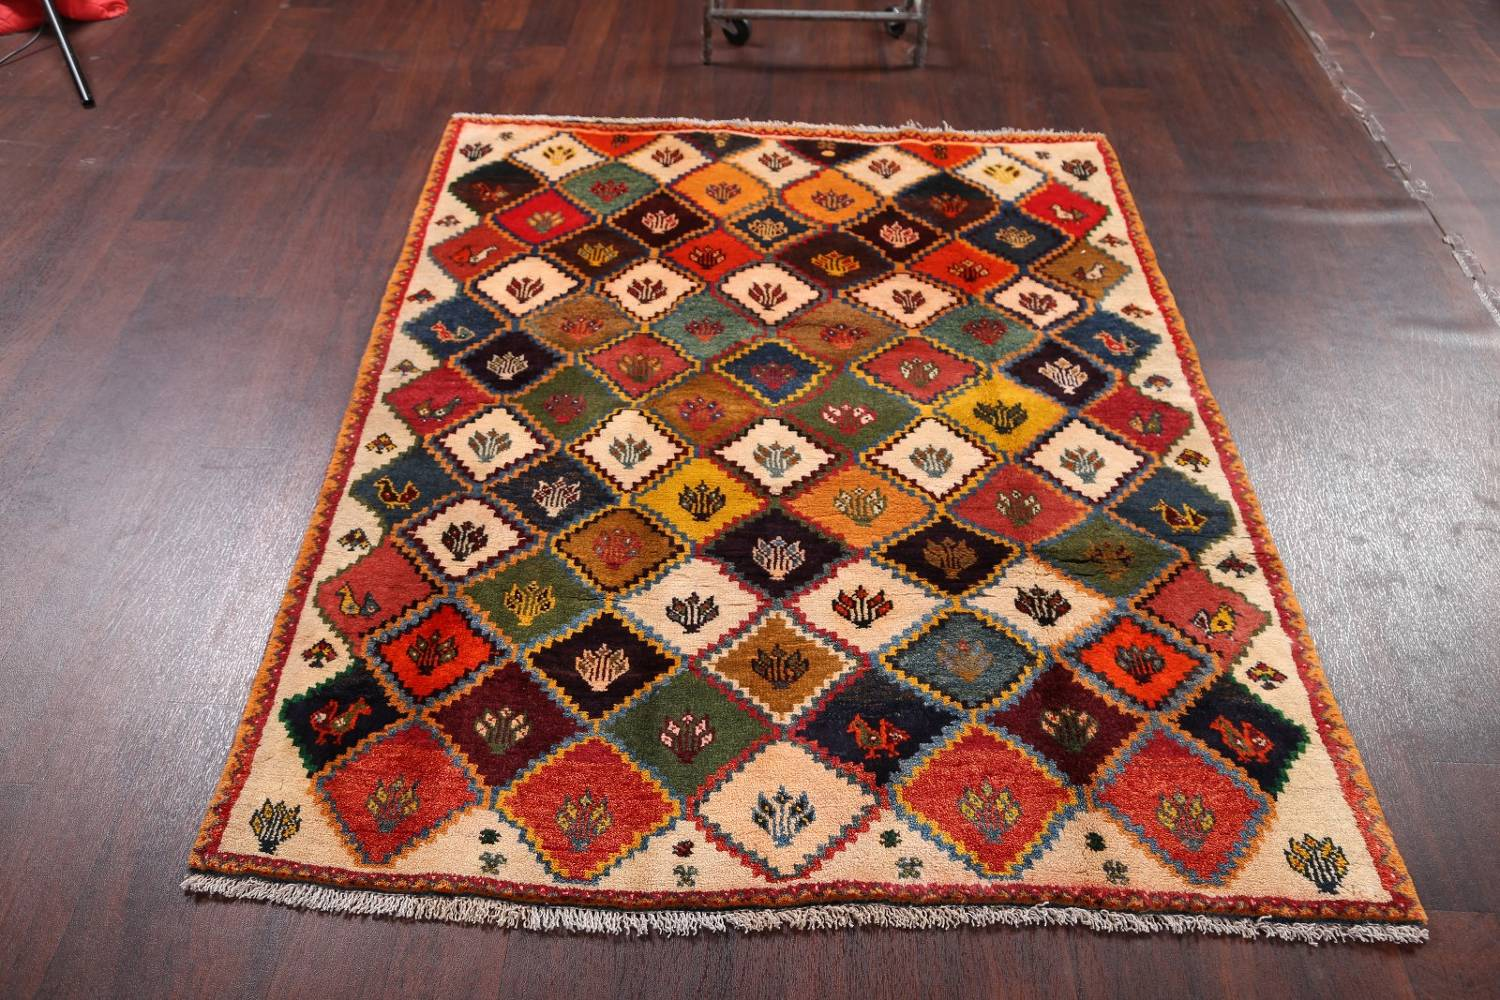 Tribal Geometric Gabbeh Shiraz Persian Hand-Knotted Area Rug Wool 5x6 image 11